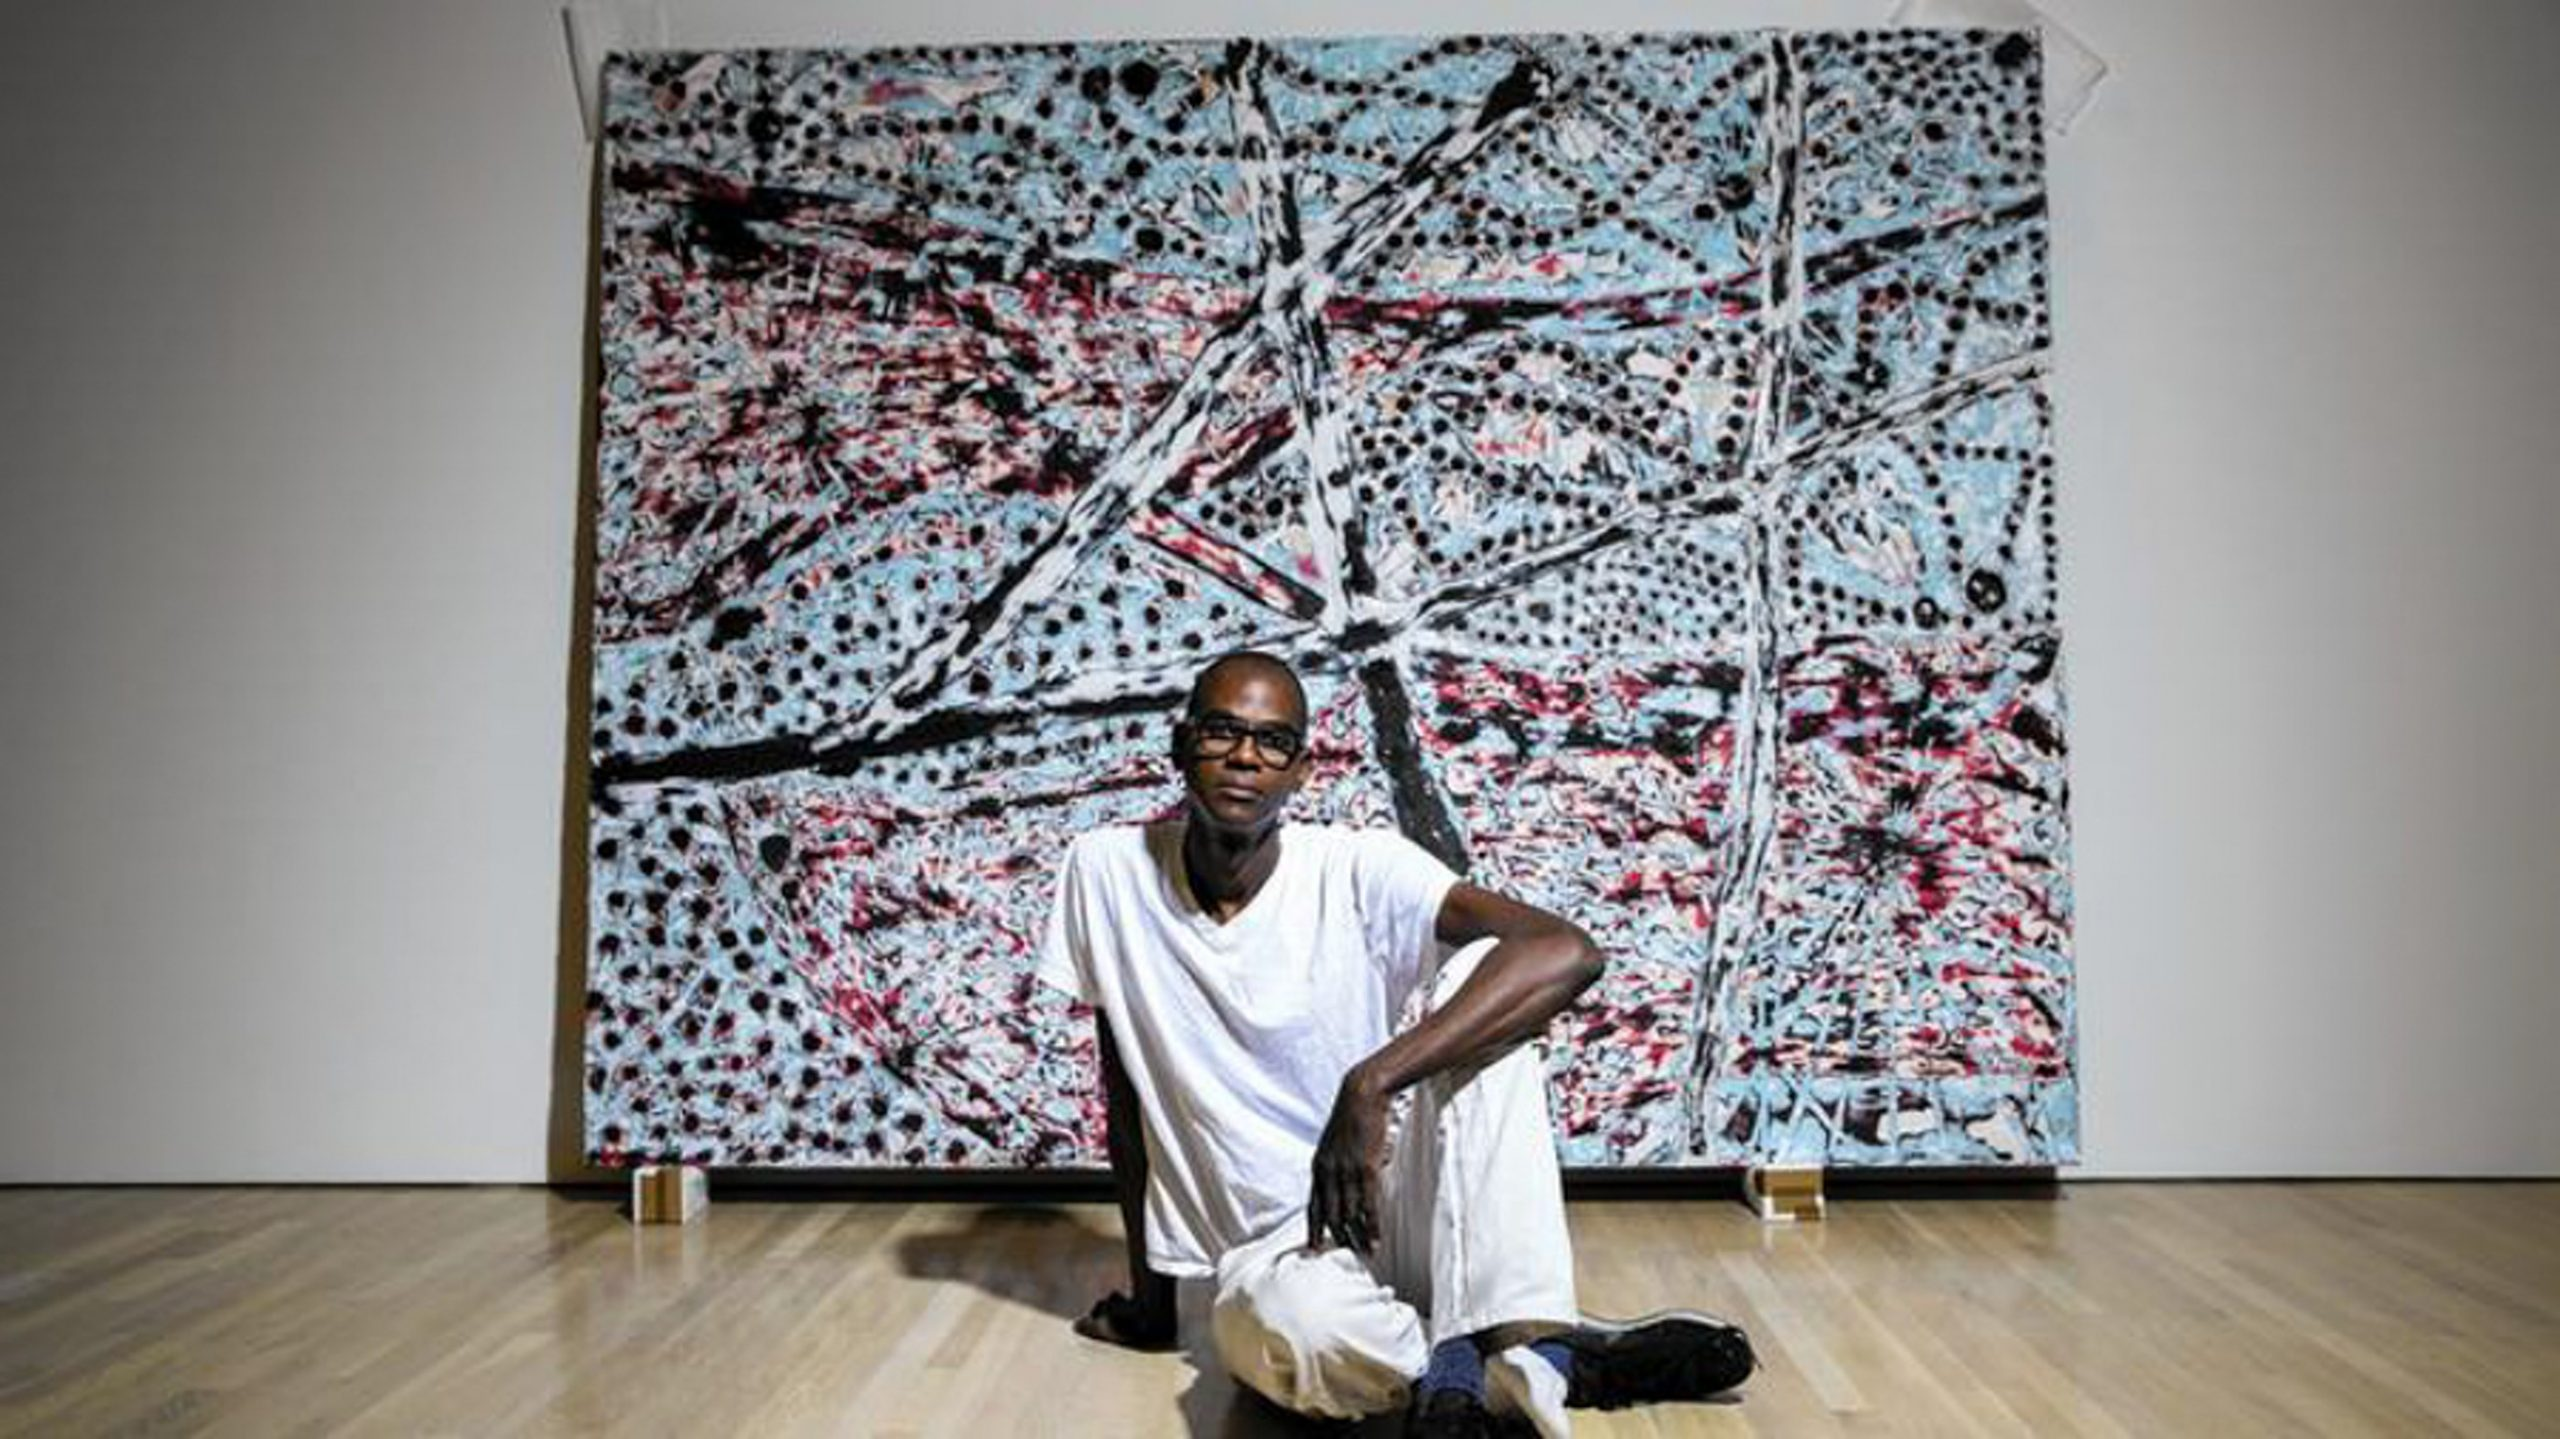 L.A. artist Mark Bradford in front of The Next Hot Line in June 2015. He will represent the U.S. at the Venice Biennale. Photo: Jay L. Clendenin/Los Angeles Times.